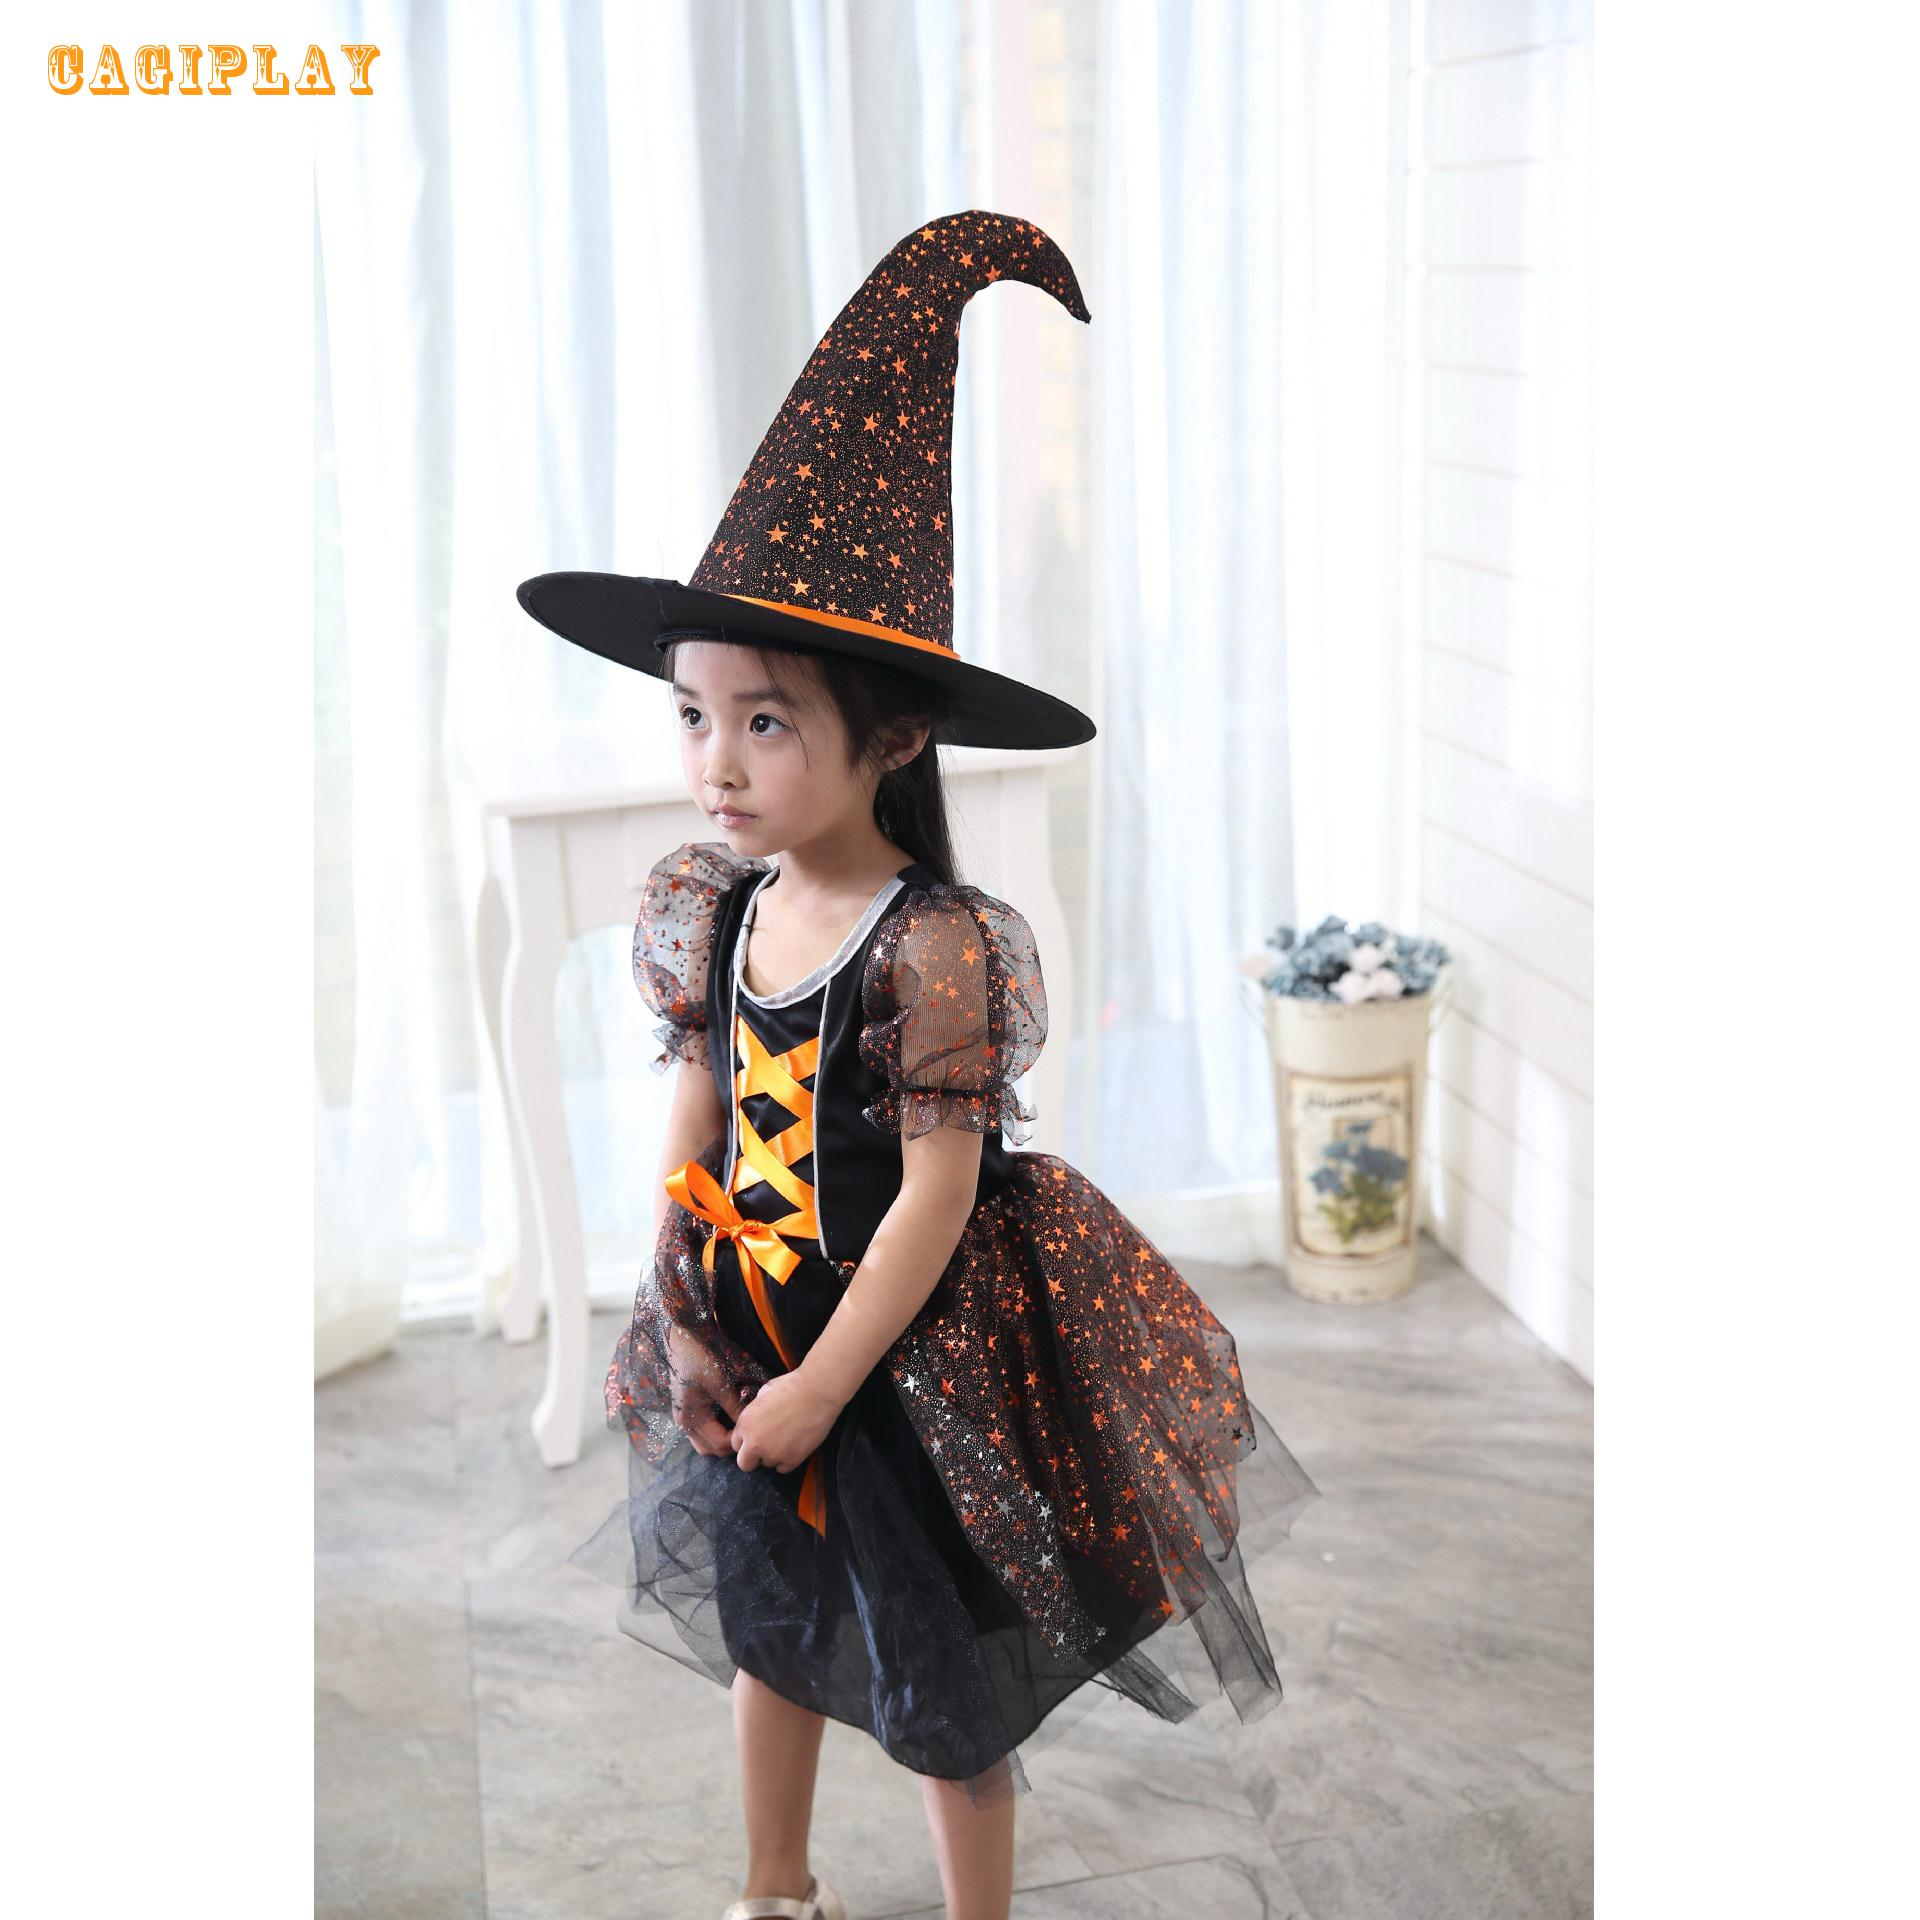 2018 New Lovely Orange Witch Dress Princess Dress Girl Carnival Cosplay Clothing Halloween Costume For Kids Age 3-10 Years